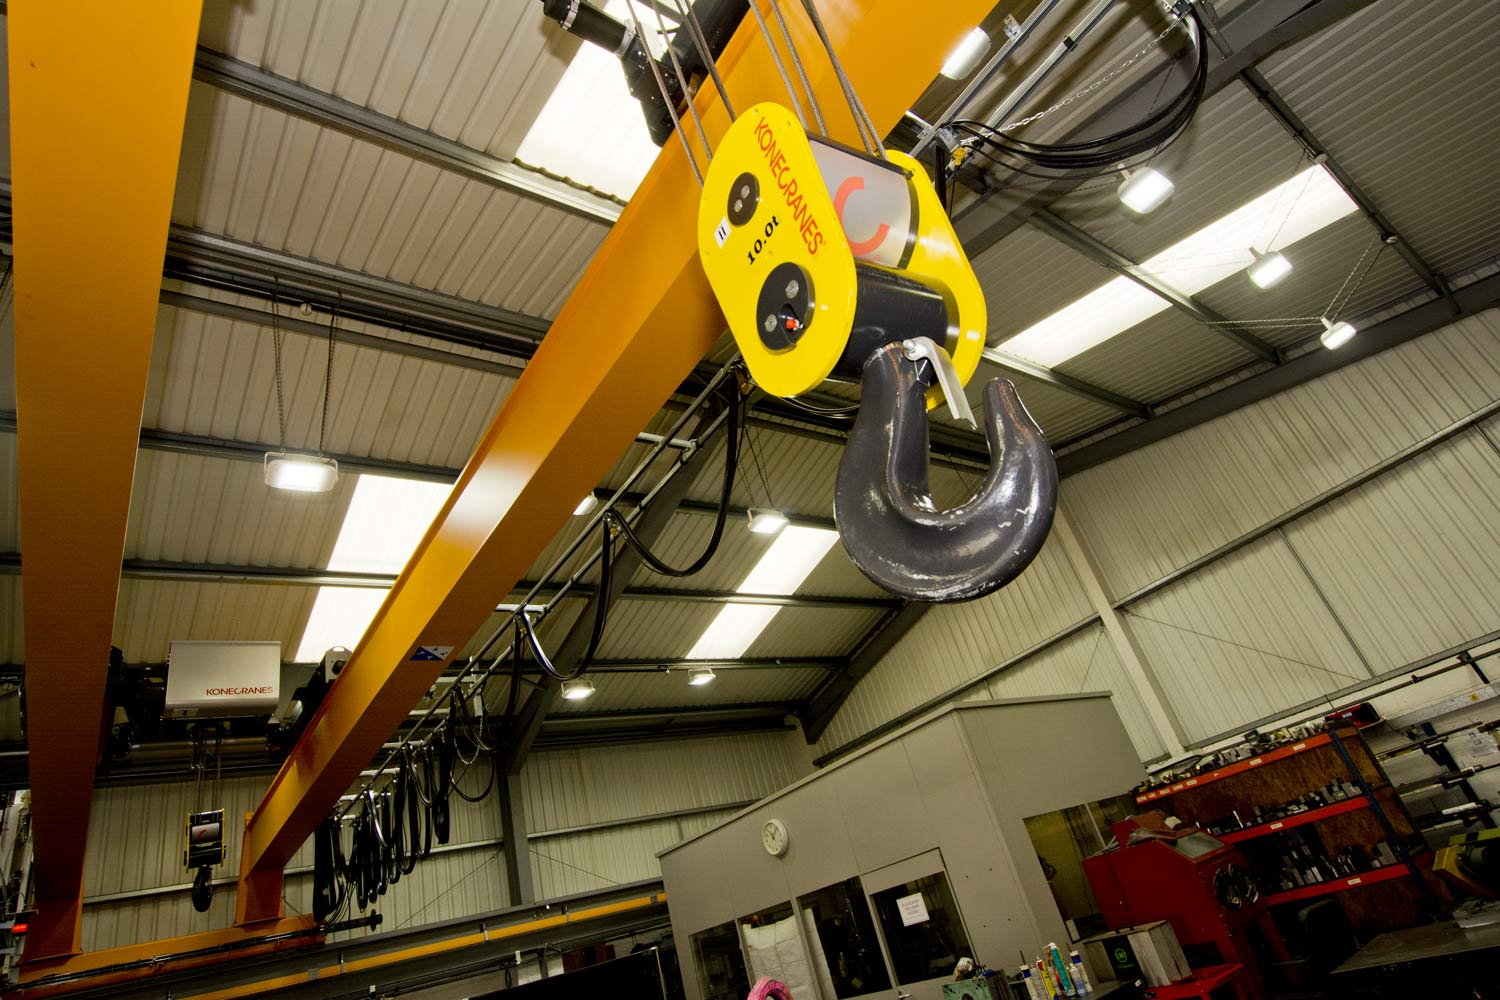 TWIN CRANE CARRIAGE BY C&M MOULD TOOLS